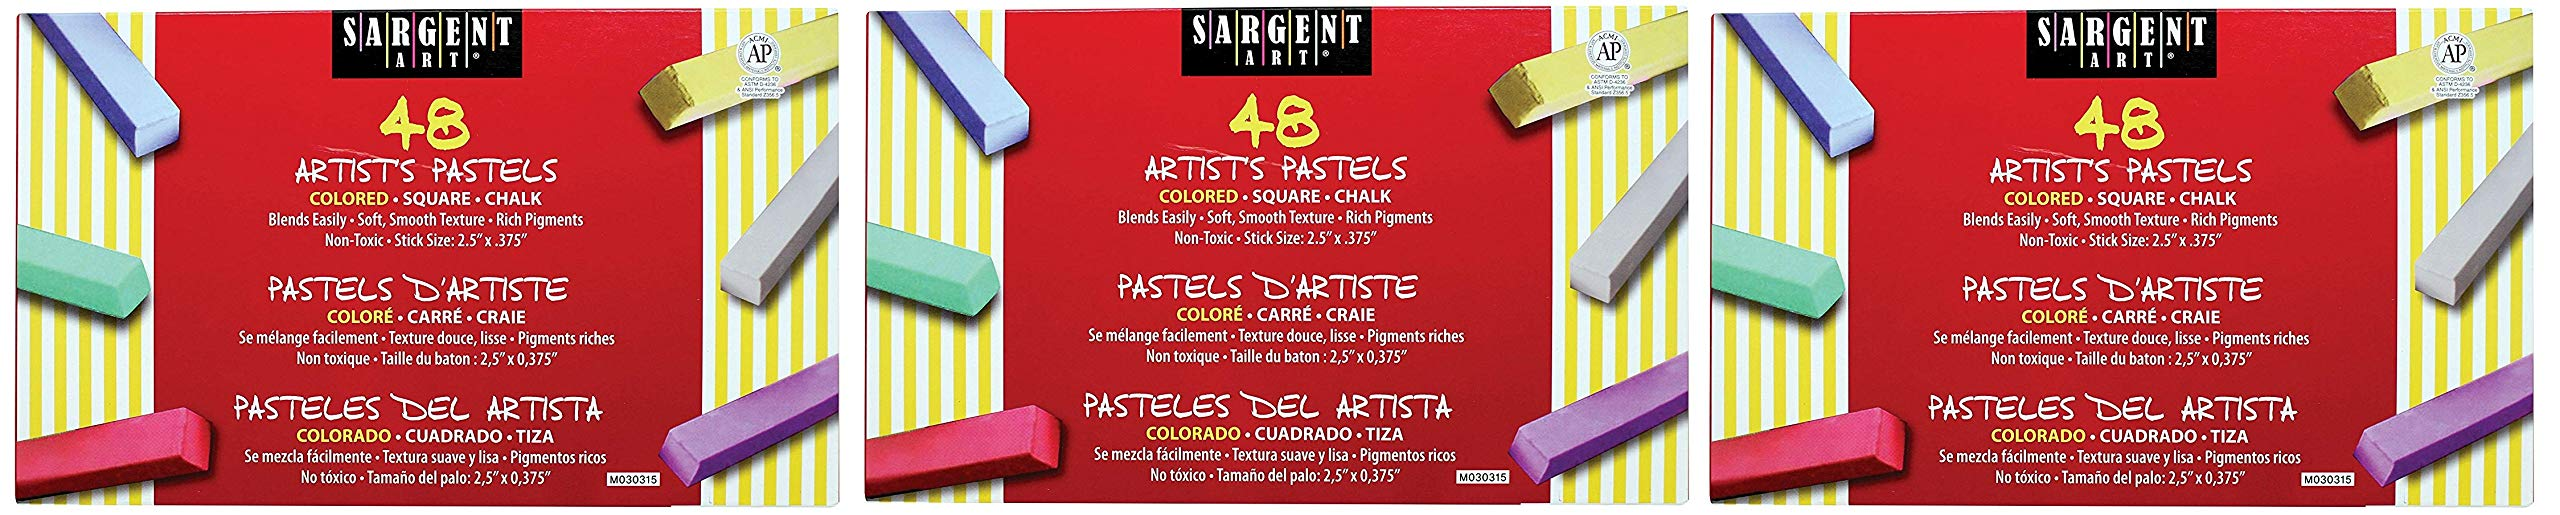 Sargent Art 22-4148 Colored Square Chalk Pastels (3 X Pack of 48)